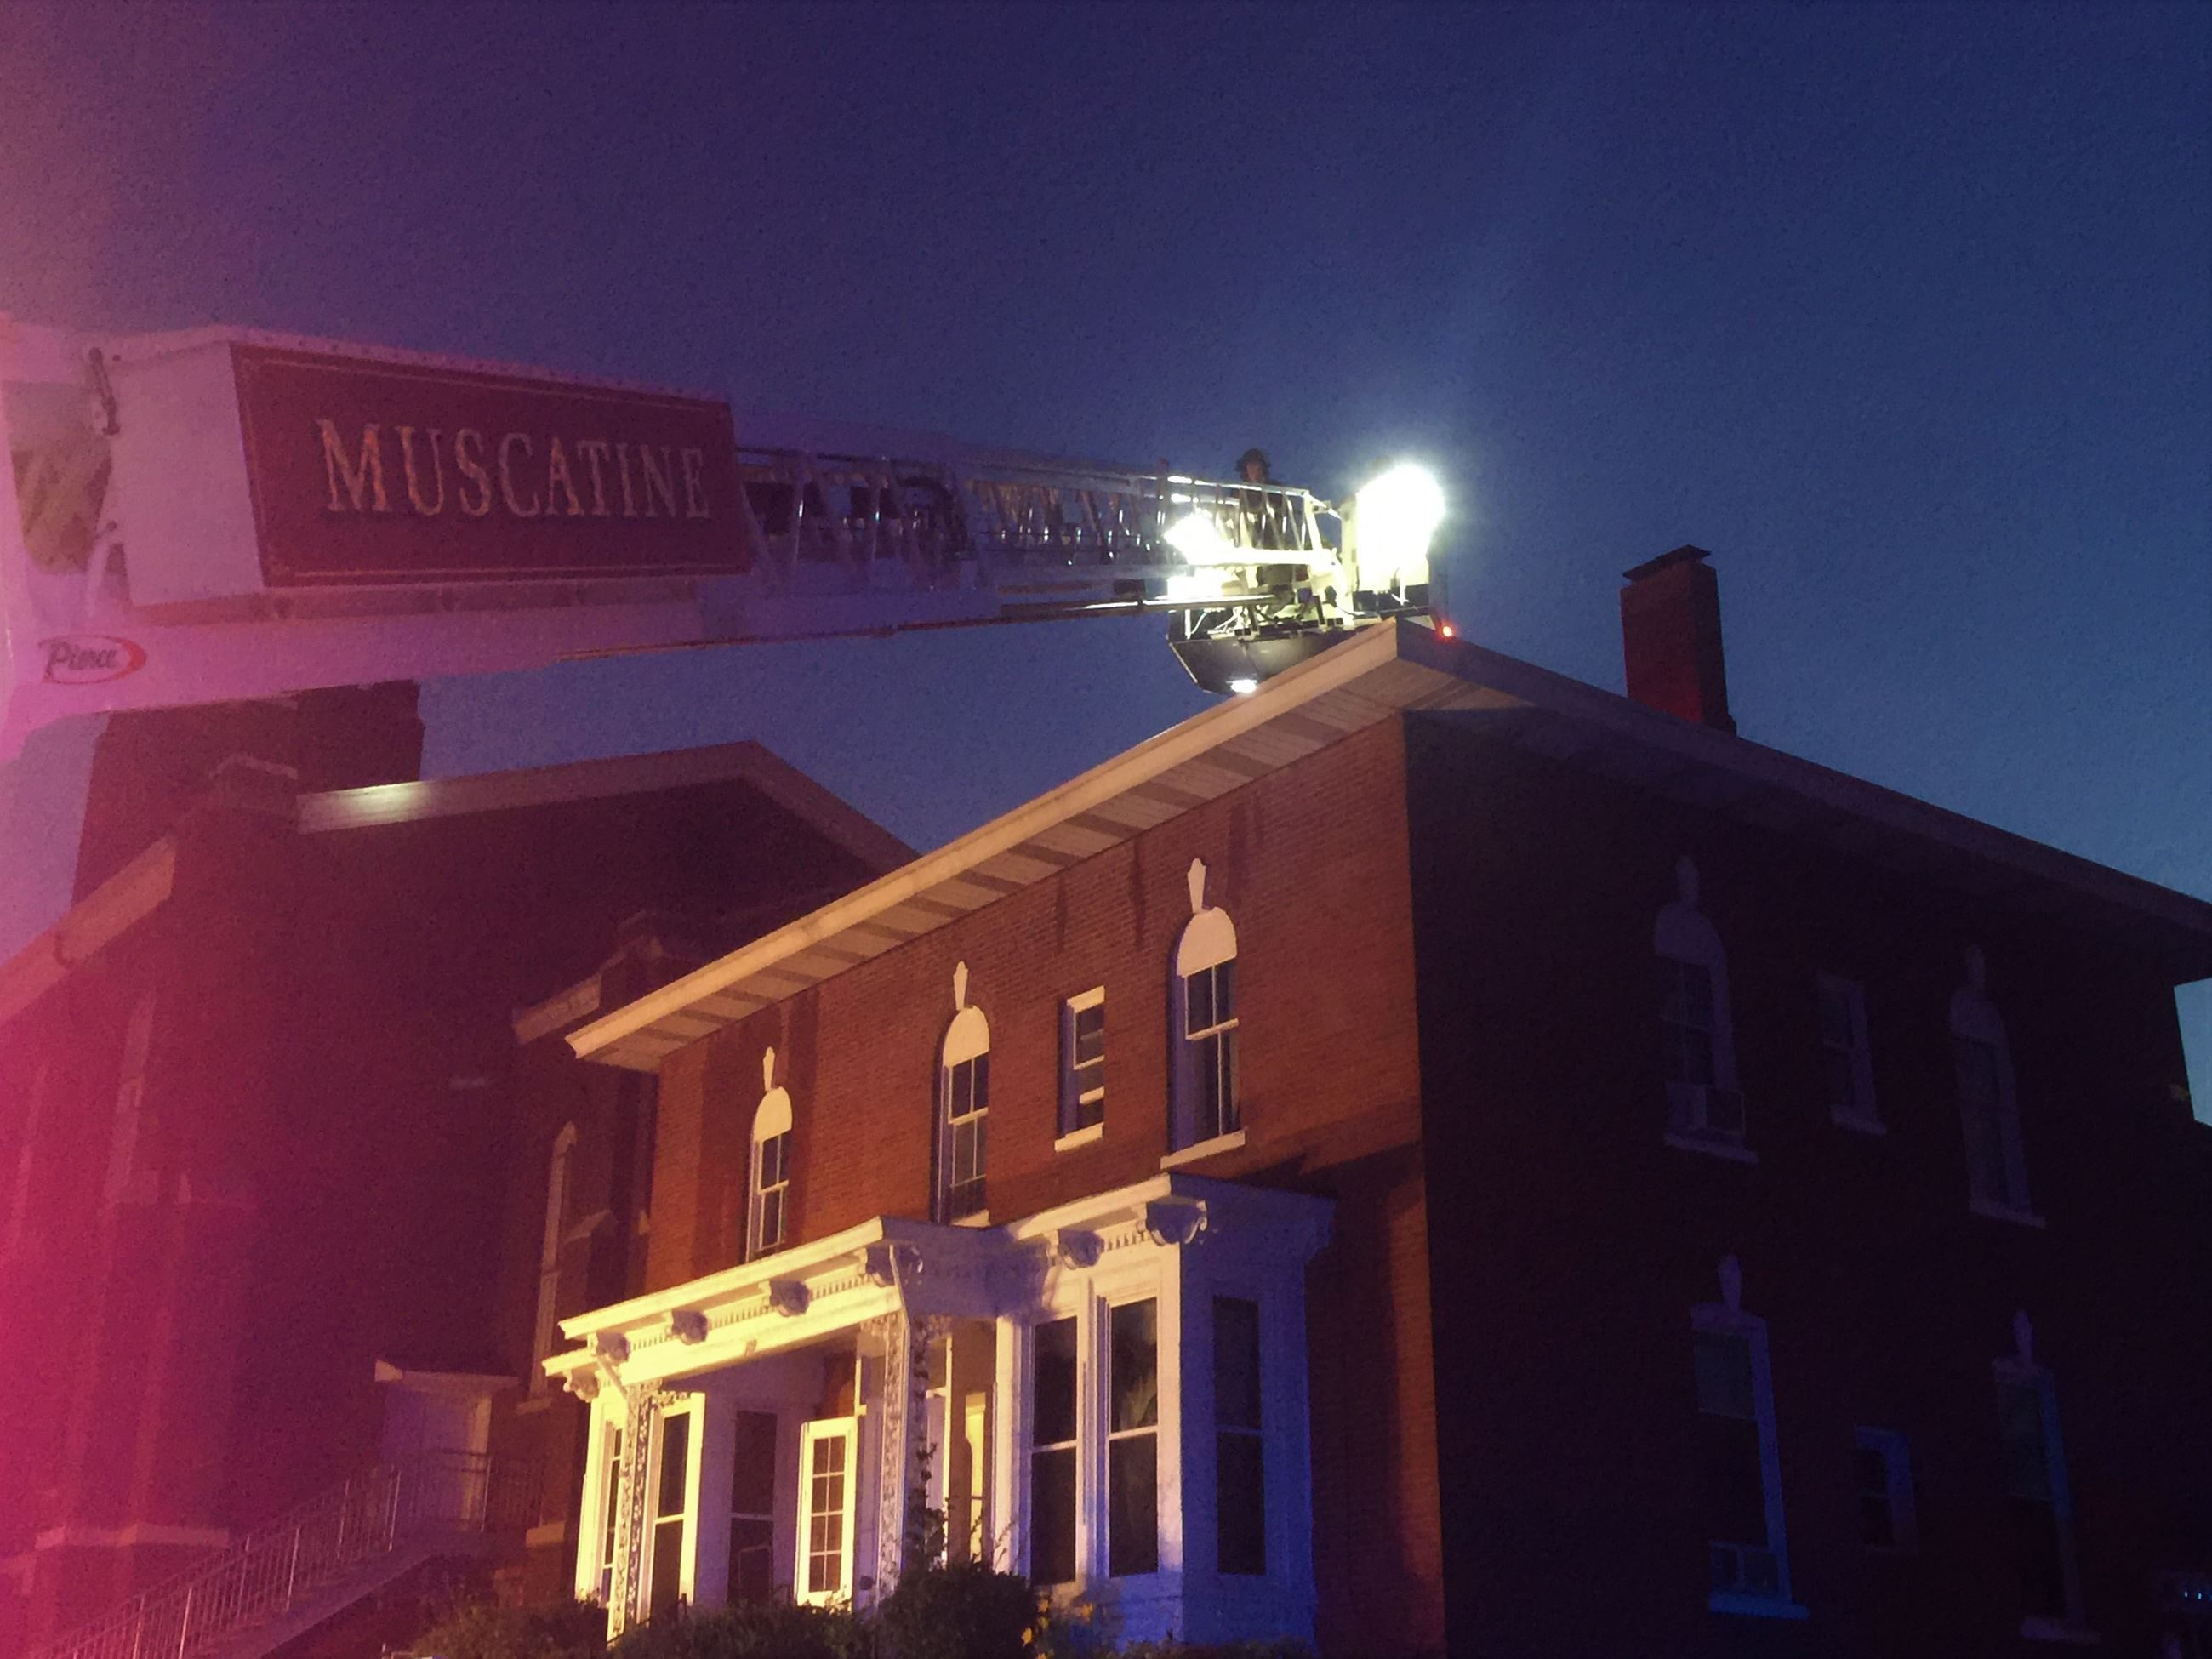 Apartment Fire on July 18, 2019 (JPG)